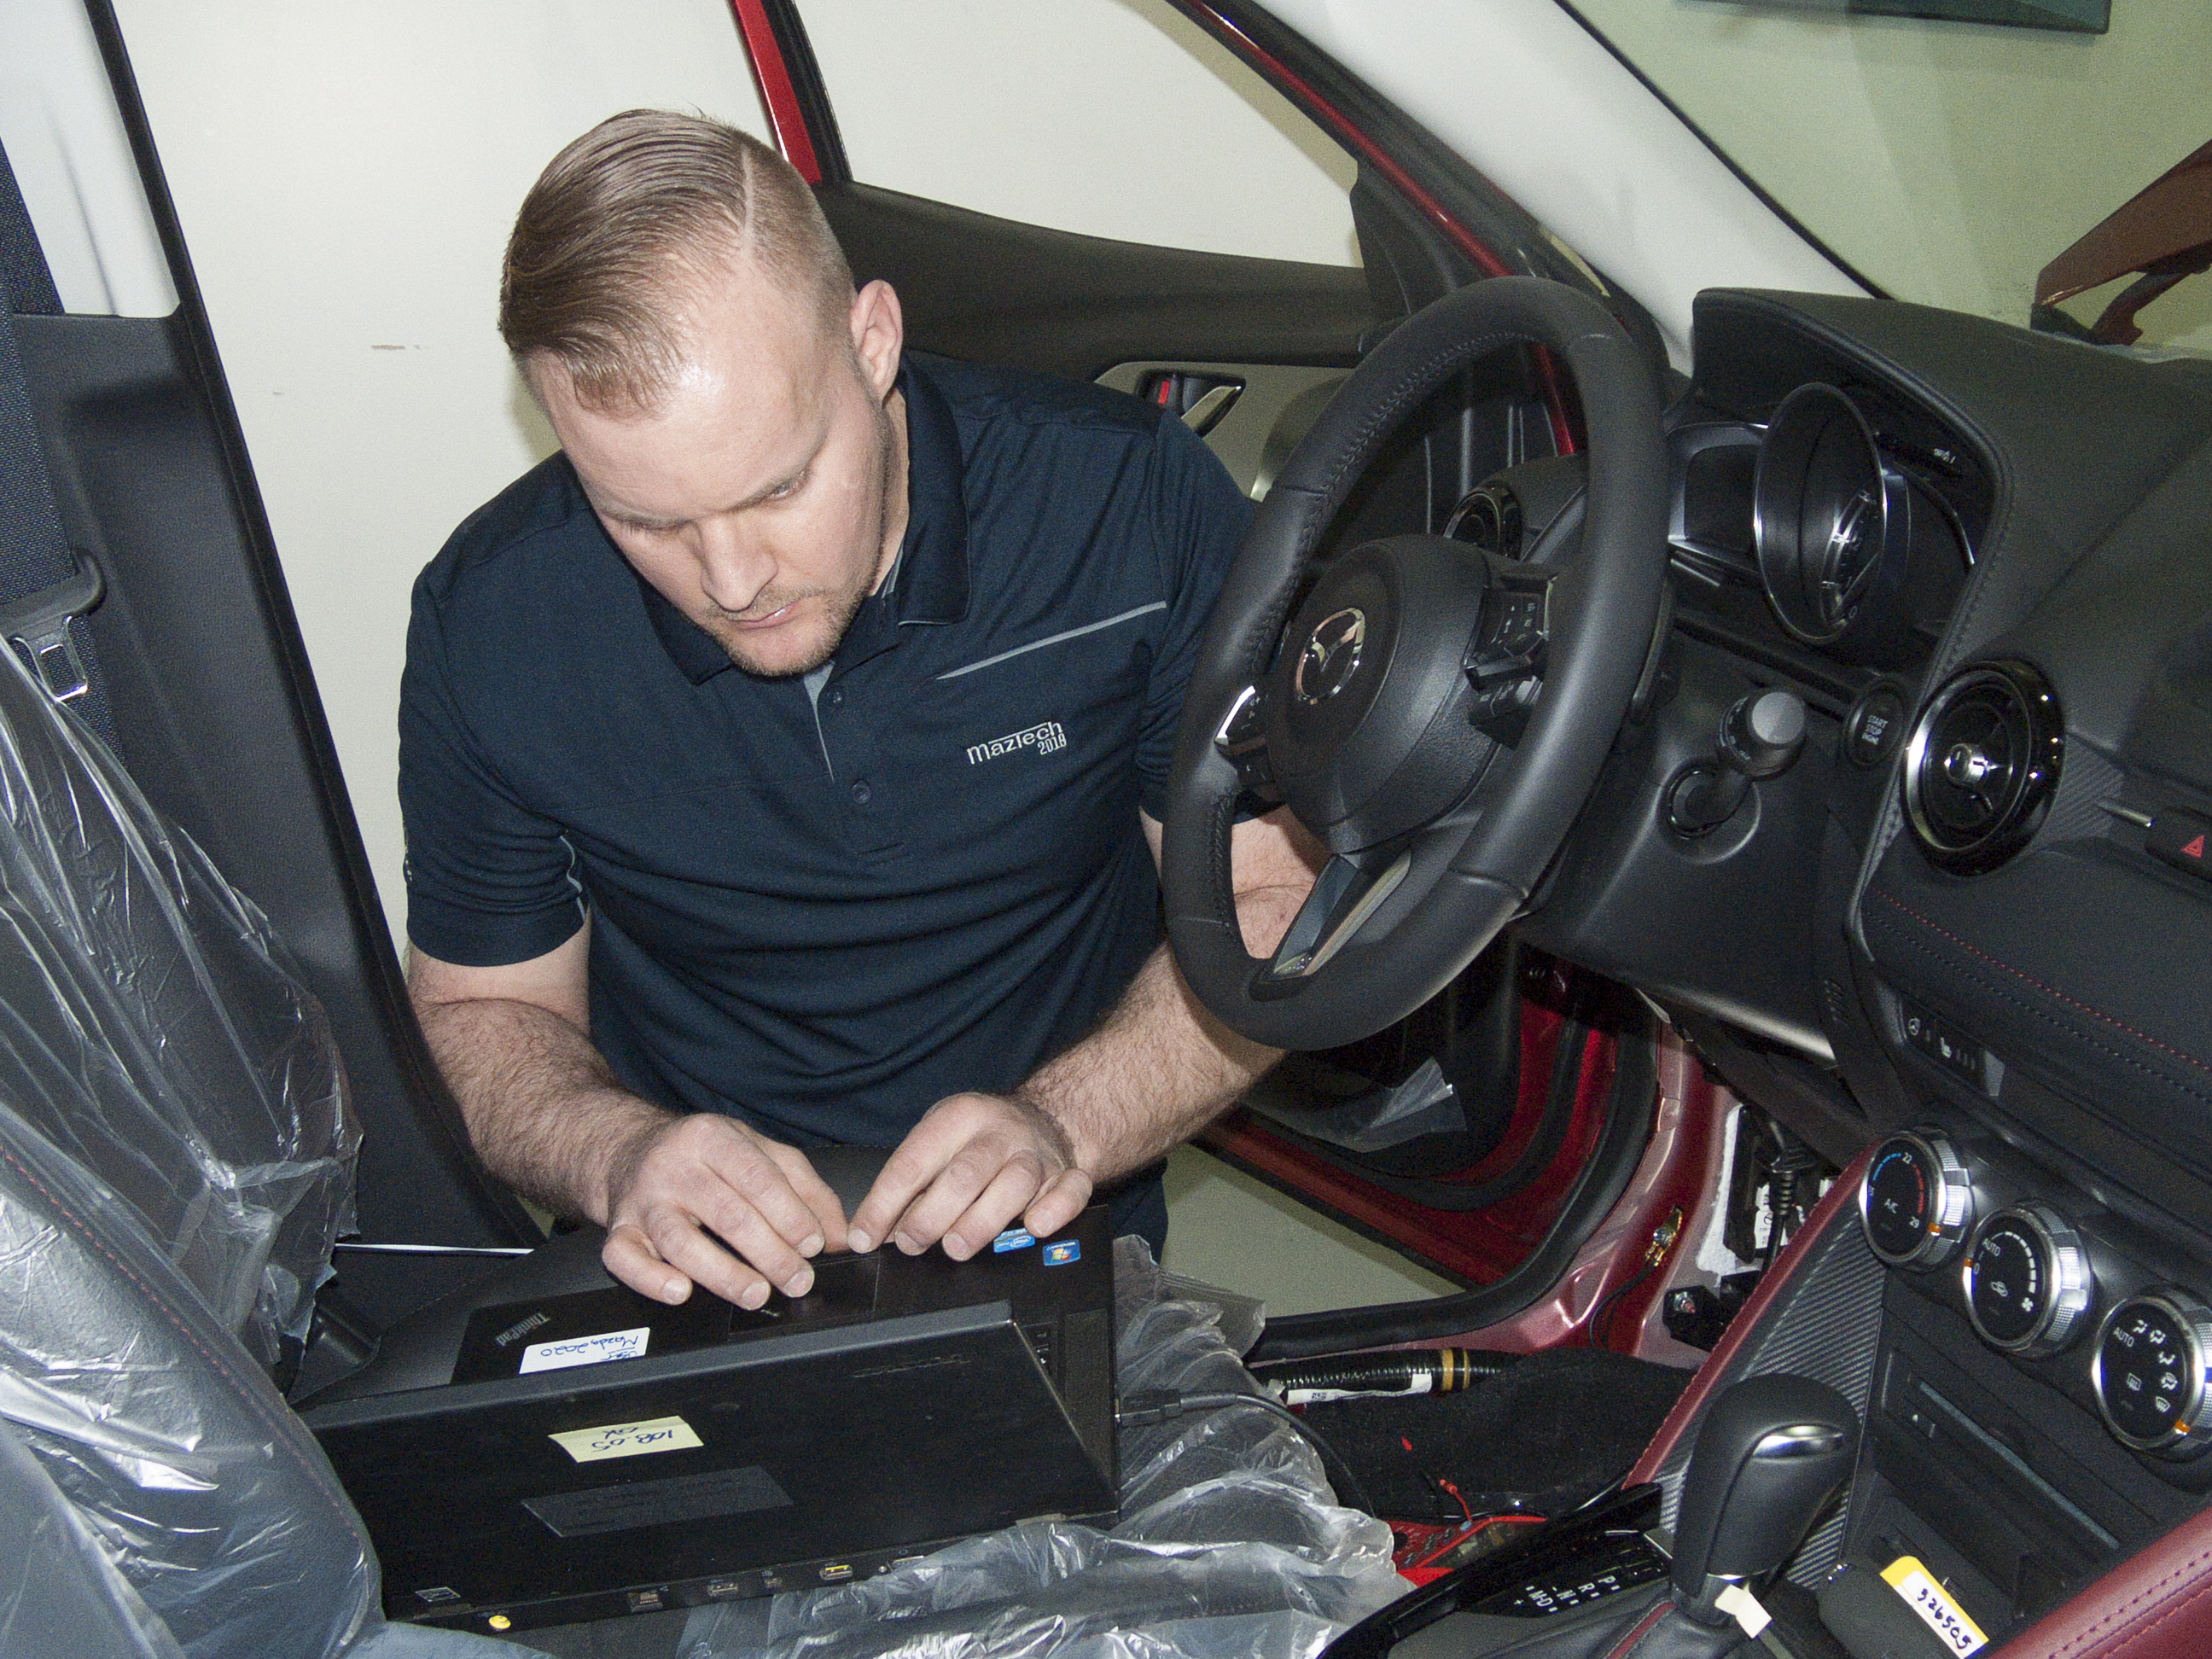 Jason Versteeg diagnoses a vehicle at the 2018 Canadian MazTech Service Skills Competition in Toronto.